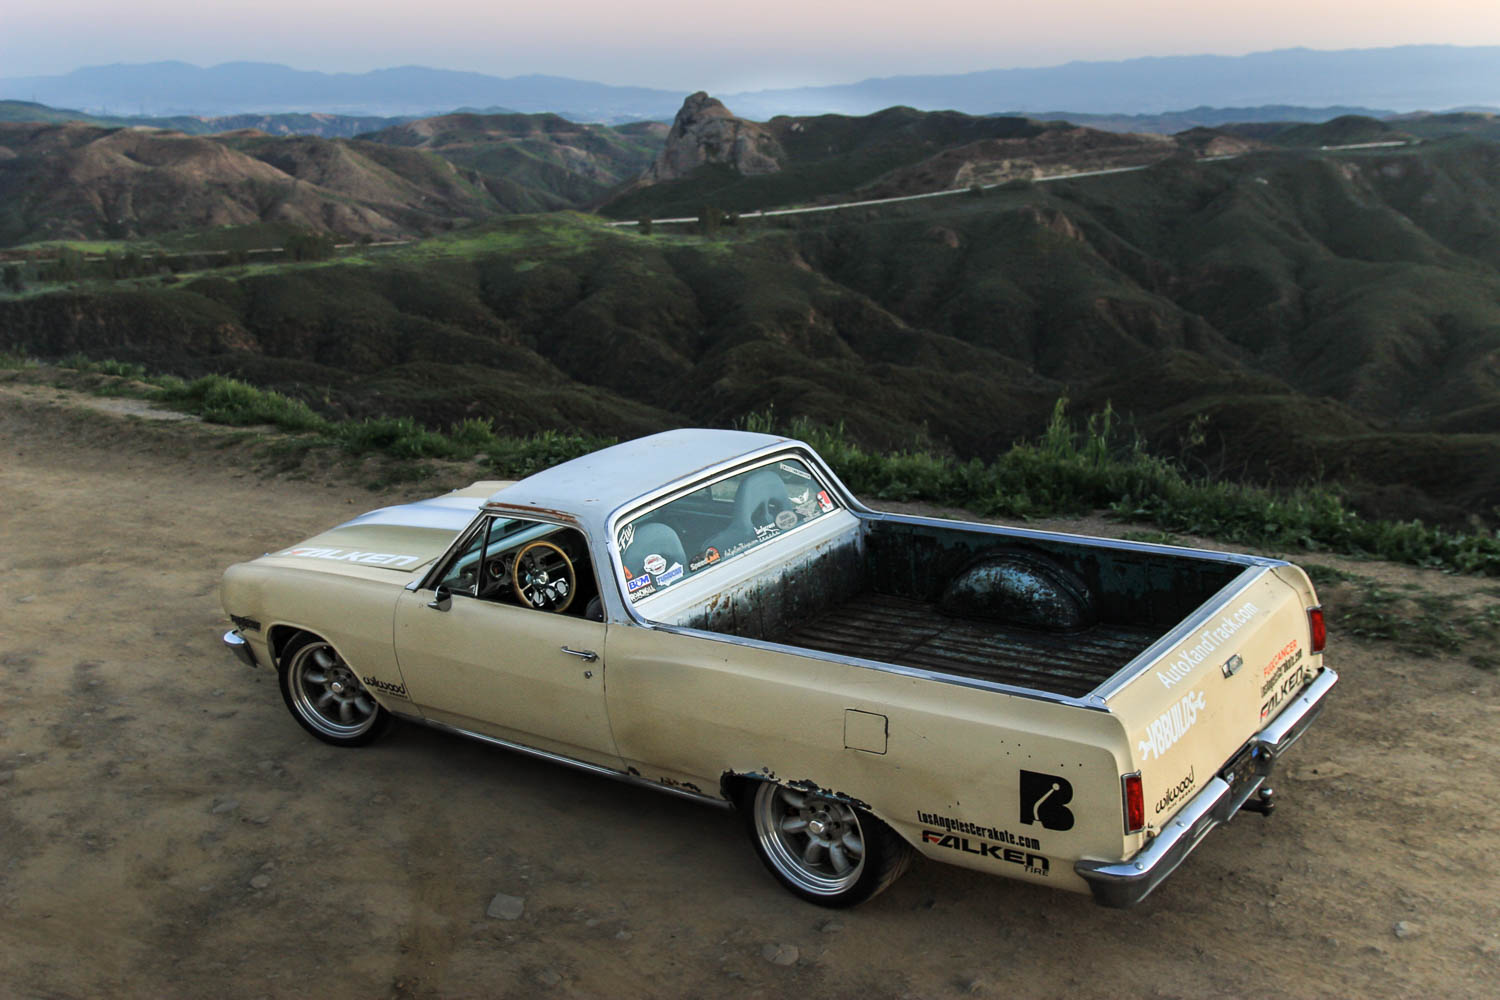 1965 Chevrolet EL Camino rear 3/4